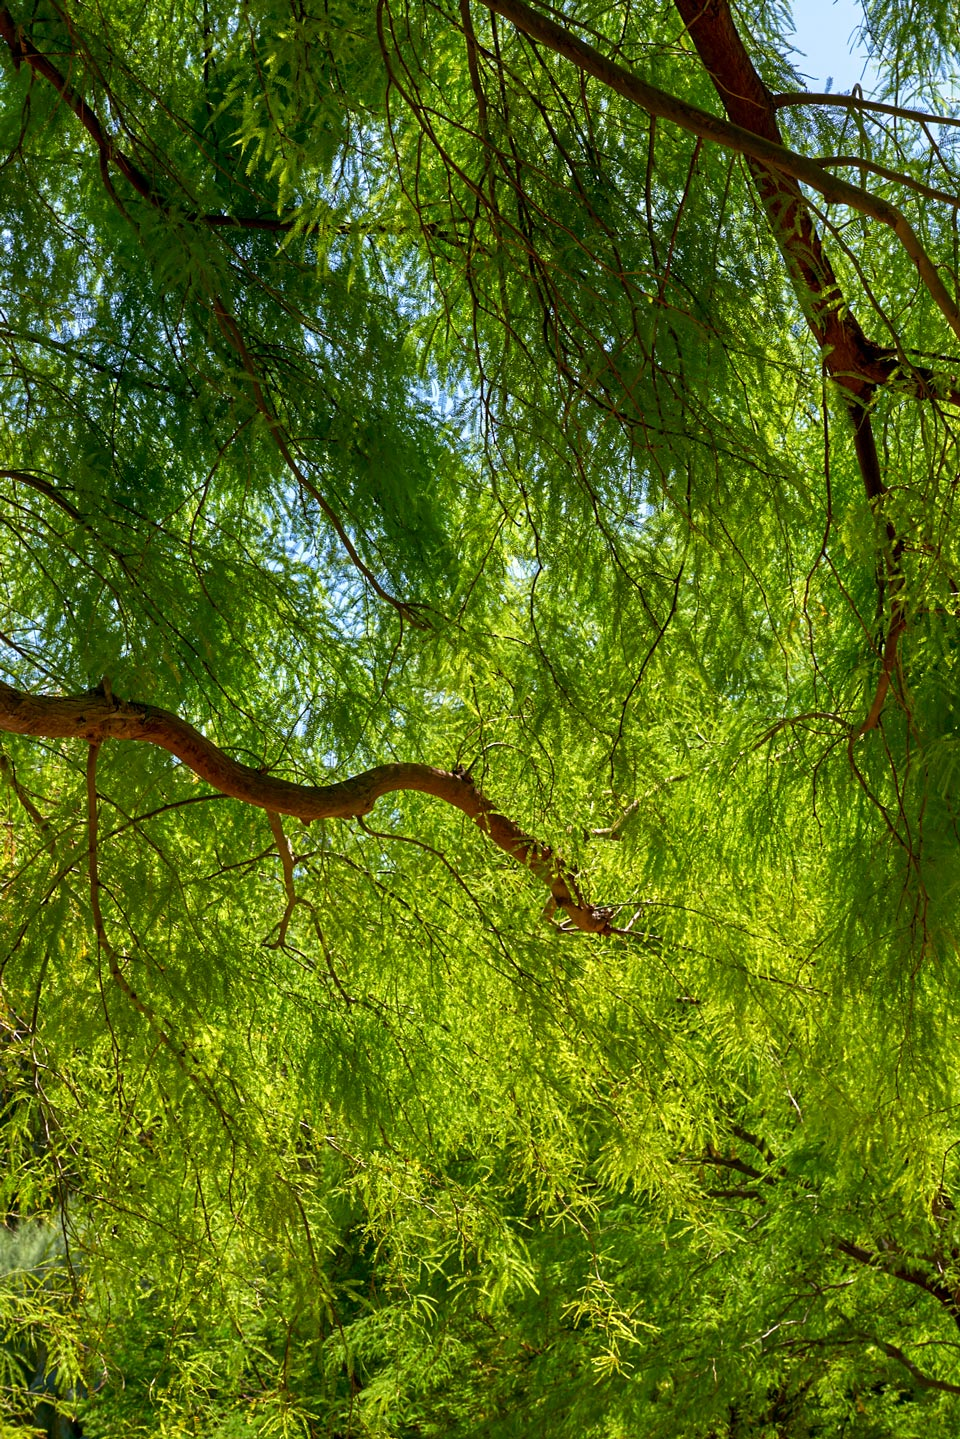 Looking up into the canopy of a Mesquite tree.